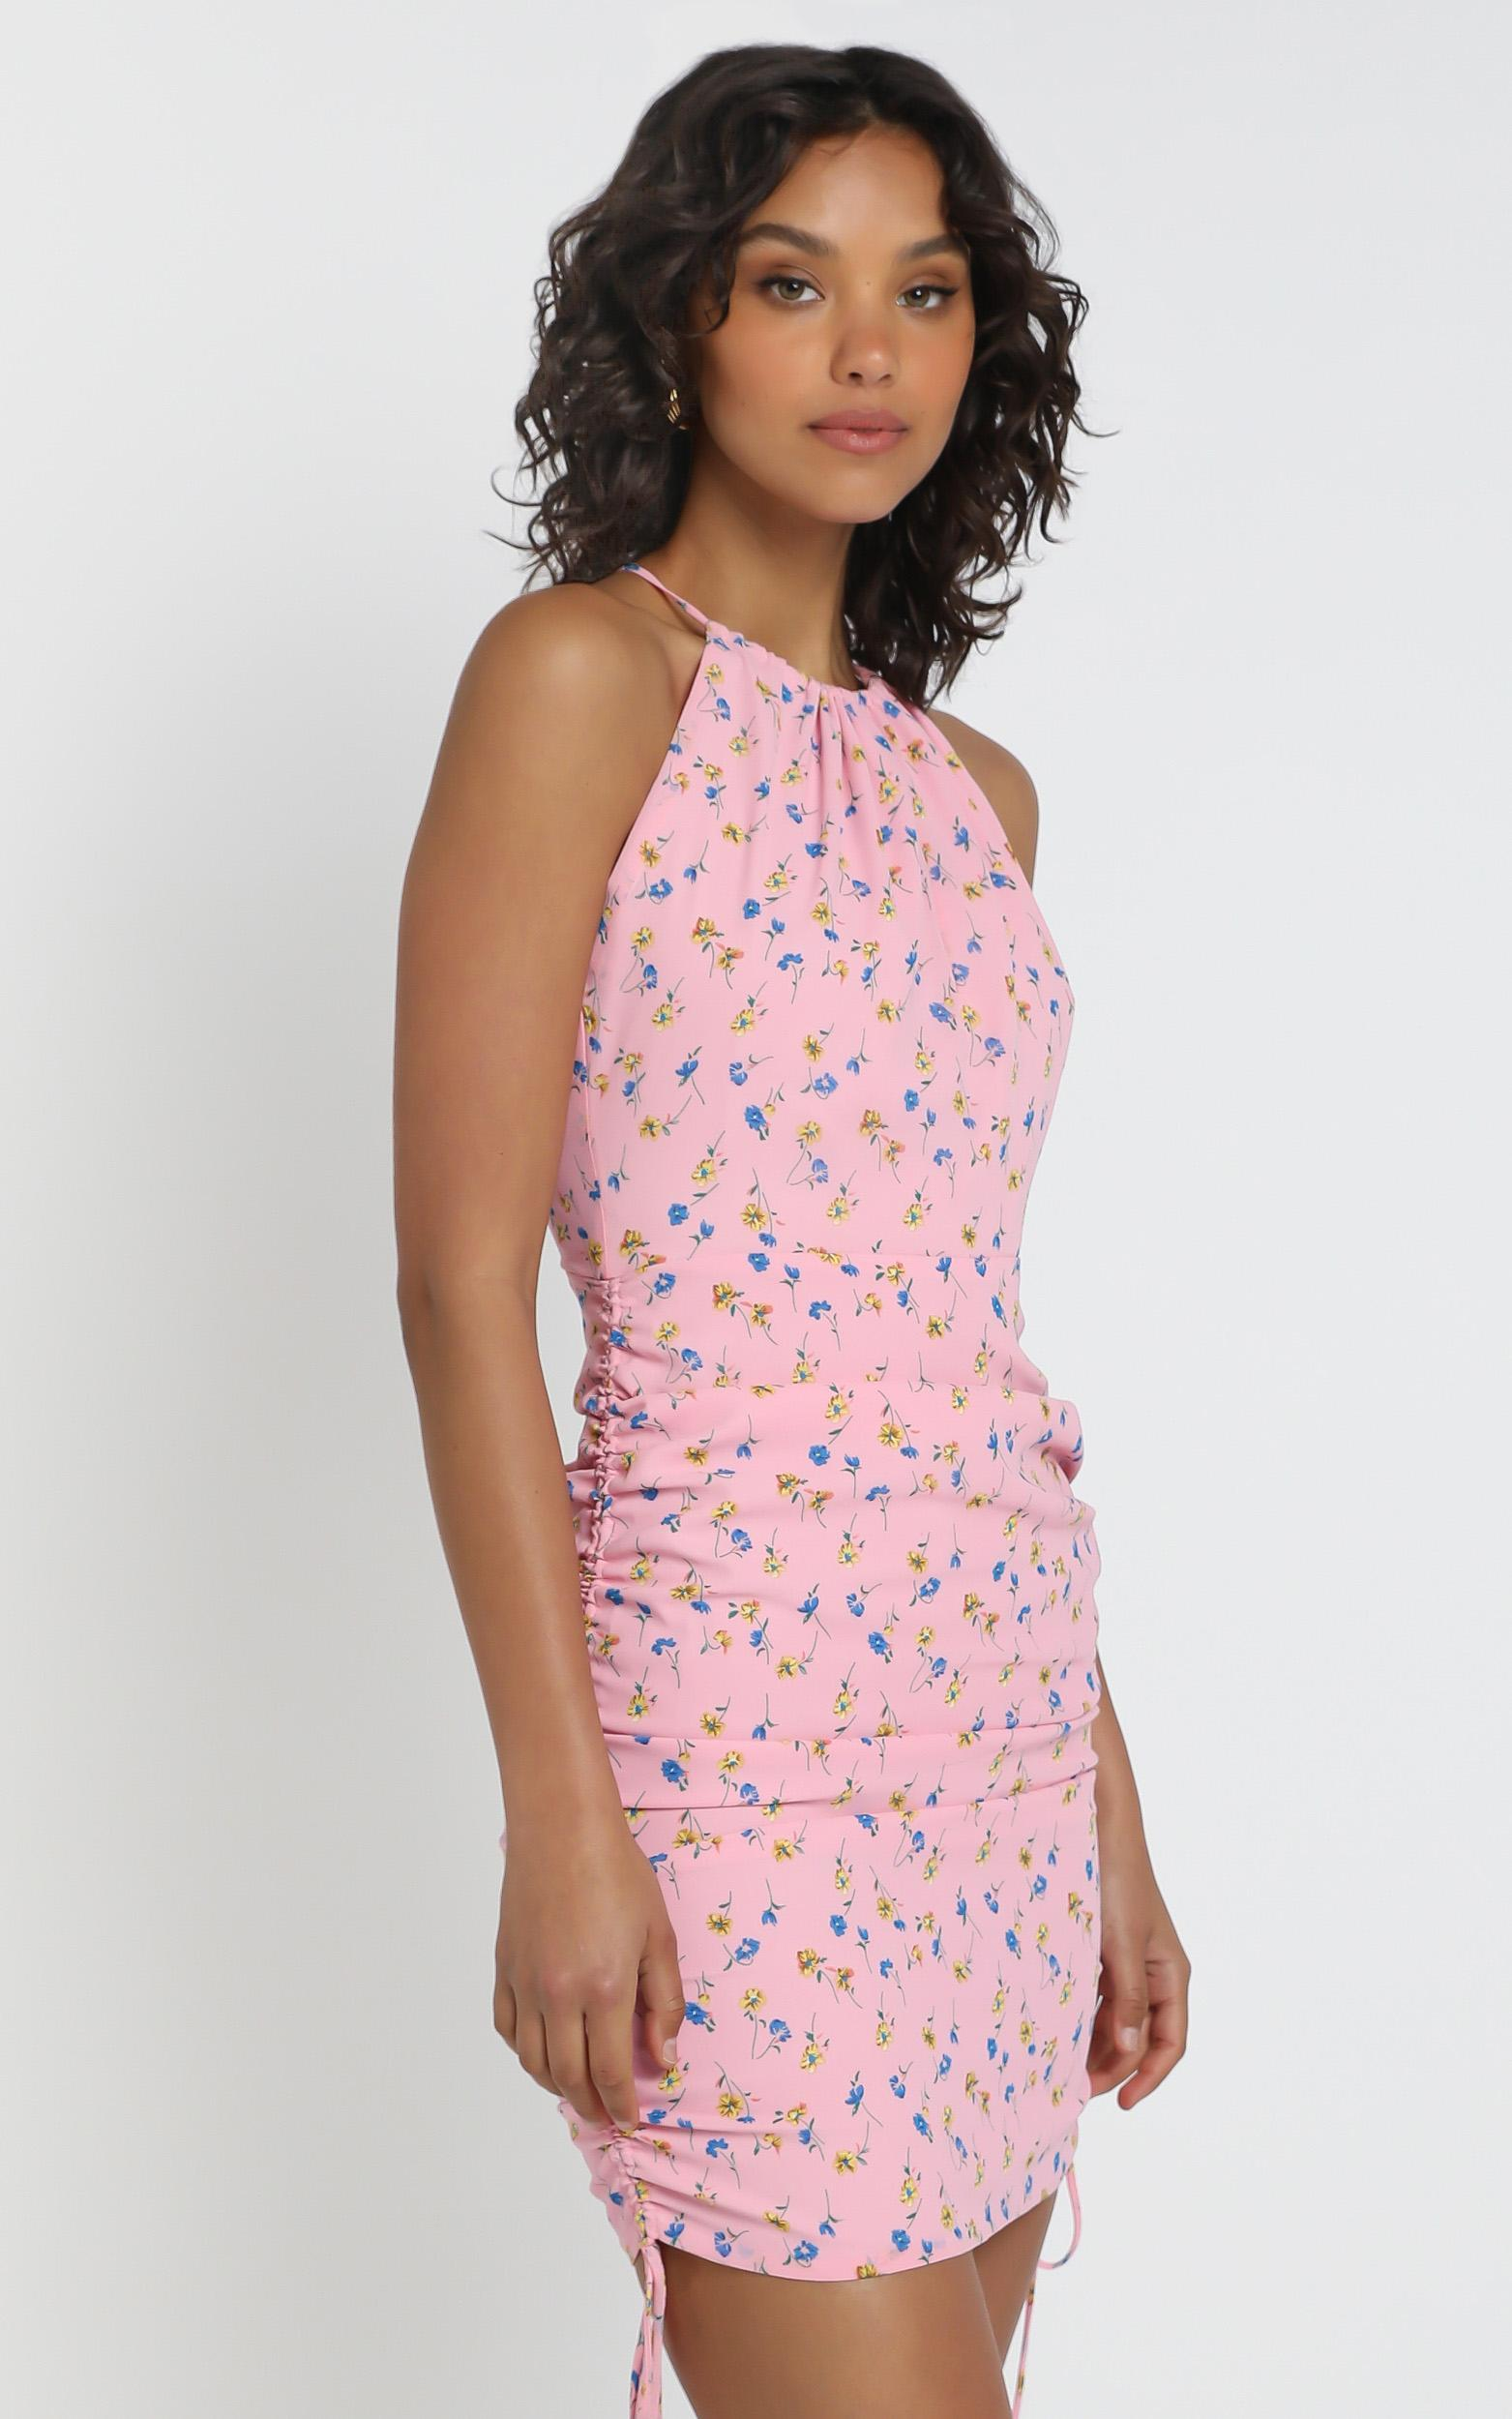 Dancing On The Stage Dress in pink floral - 4 (XXS), Pink, hi-res image number null